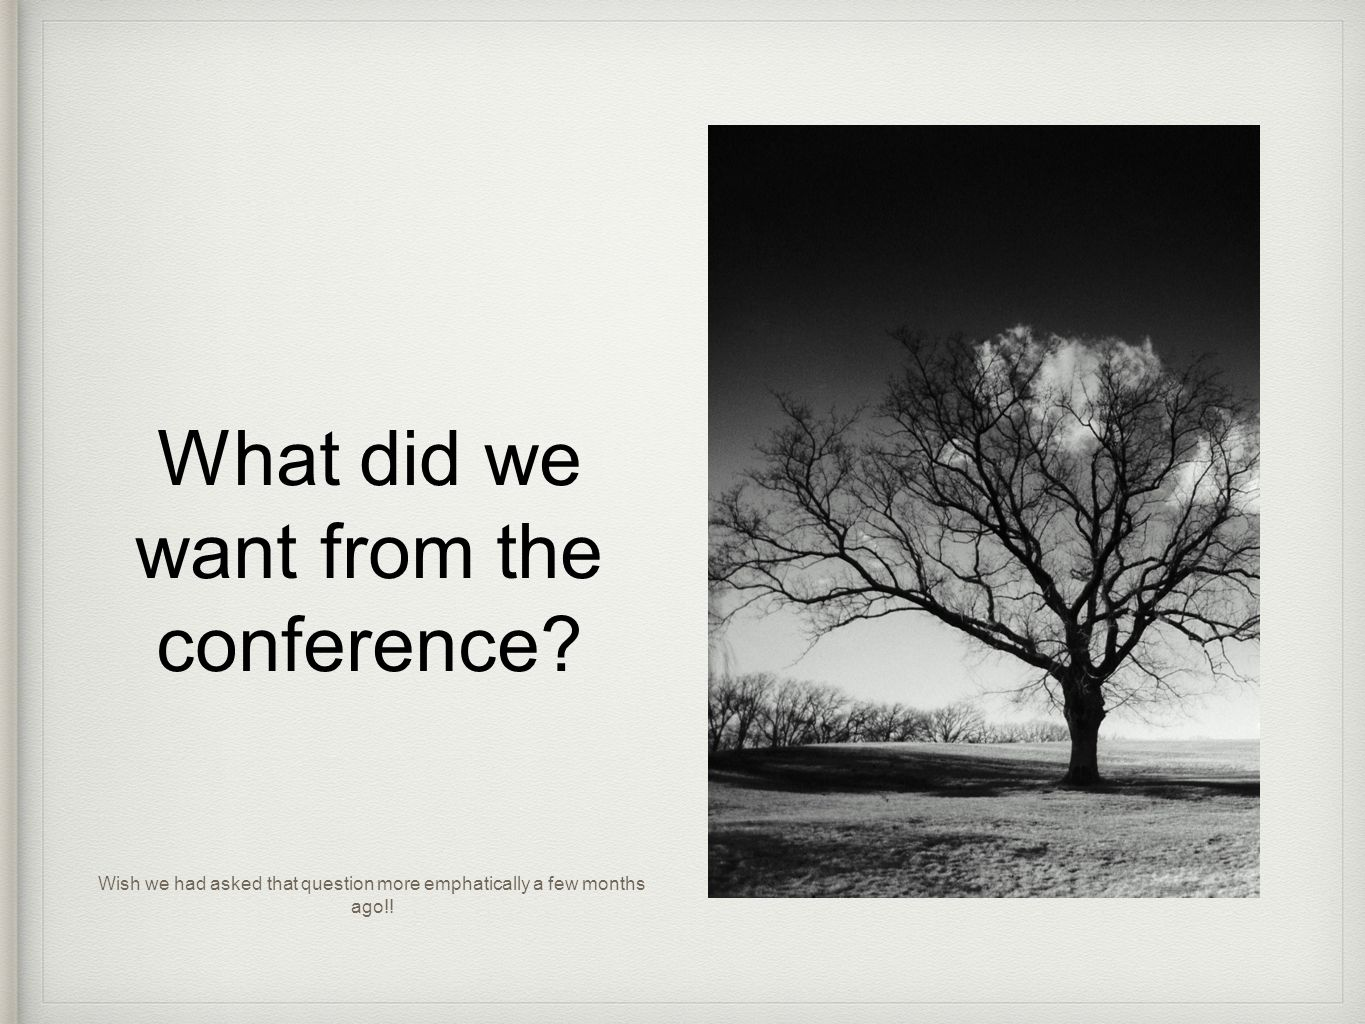 What did we want from the conference.